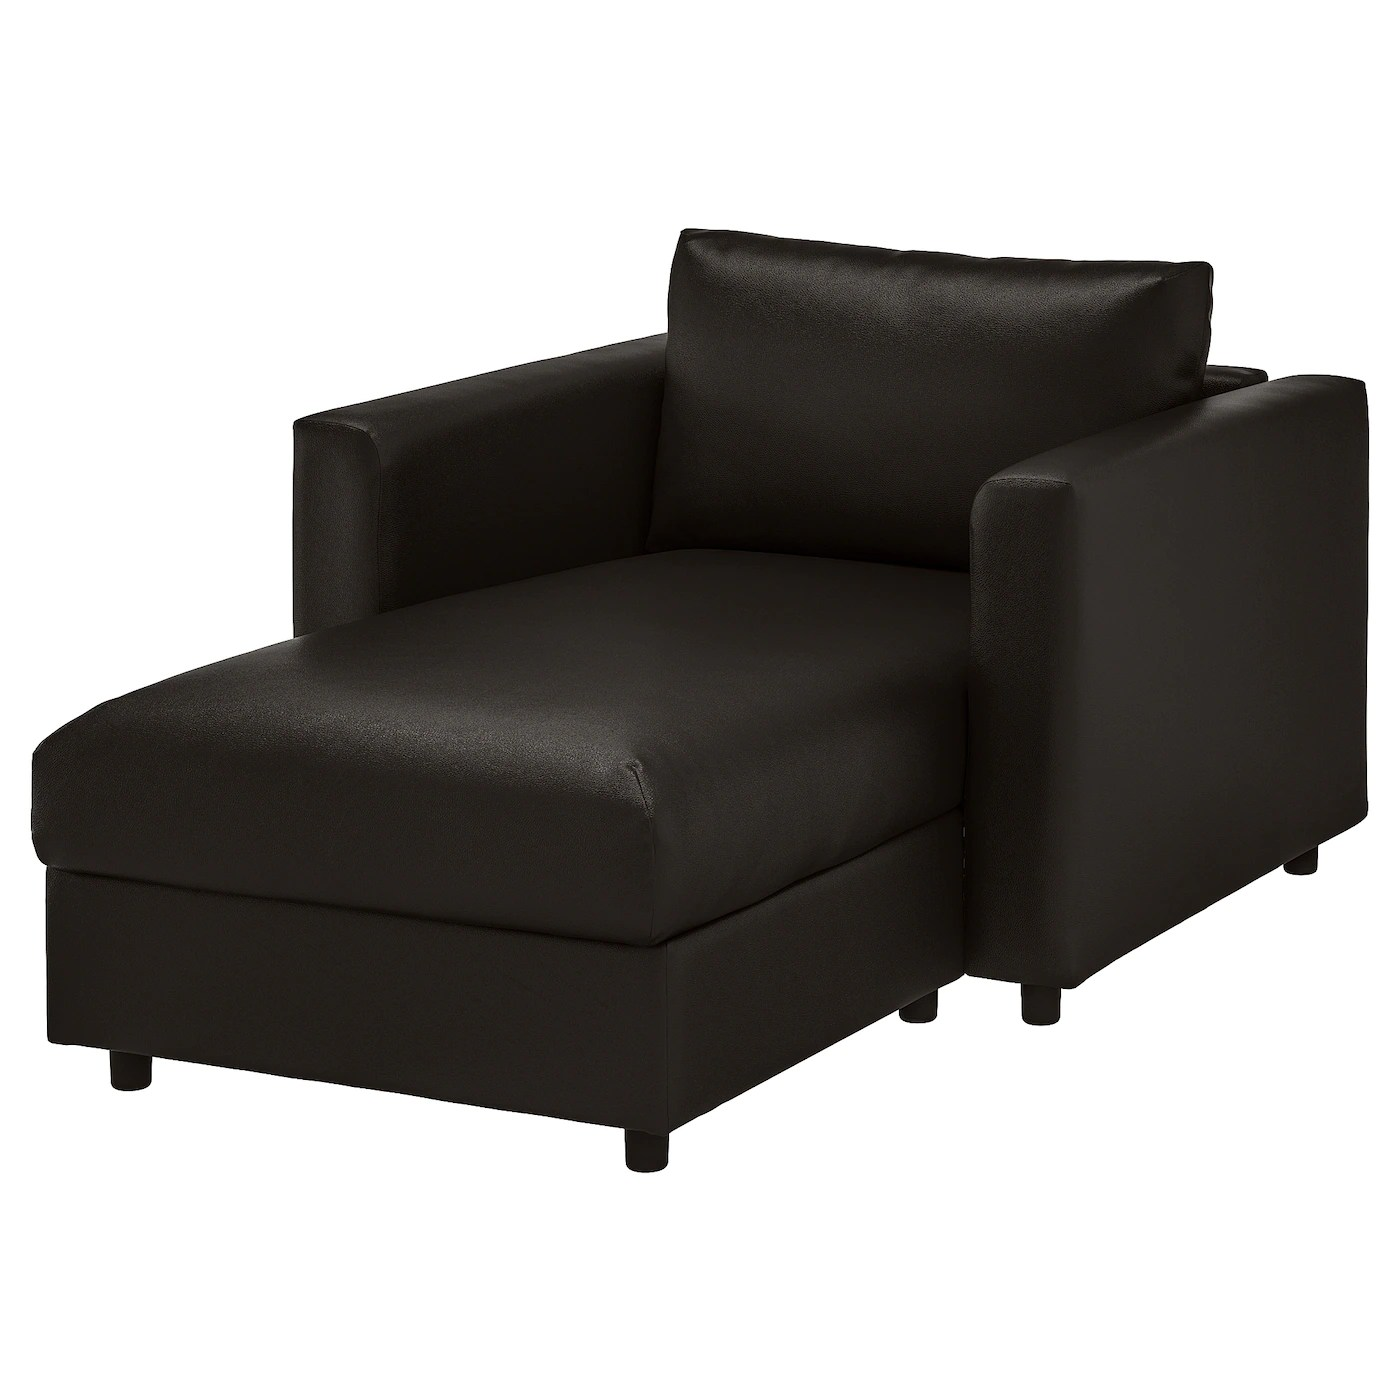 Ikea Online Bettsofa Besten Bettsofa Design Ideen Informa Sofa Bed Sale 2018